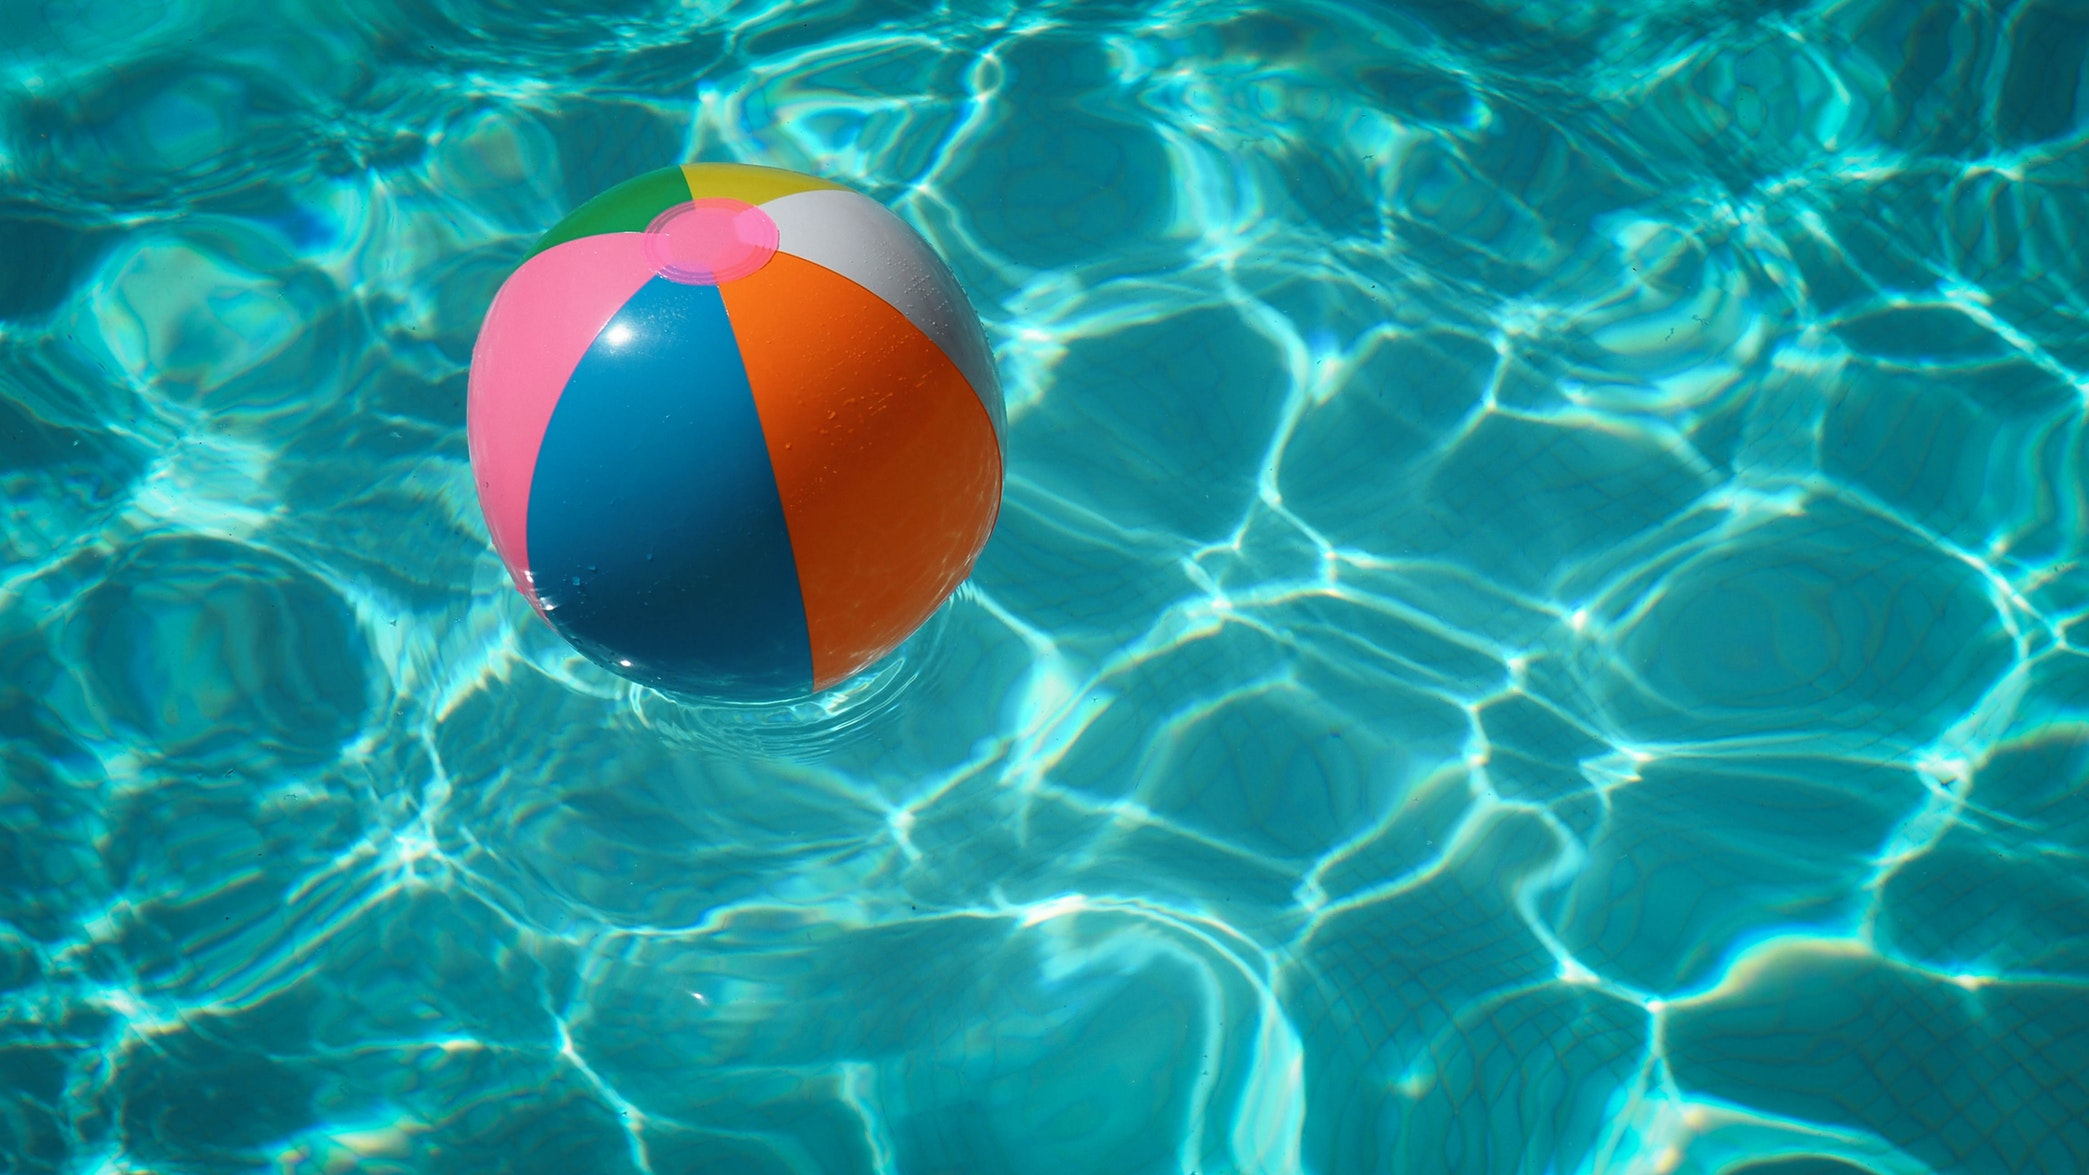 pool water and beach ball free image image